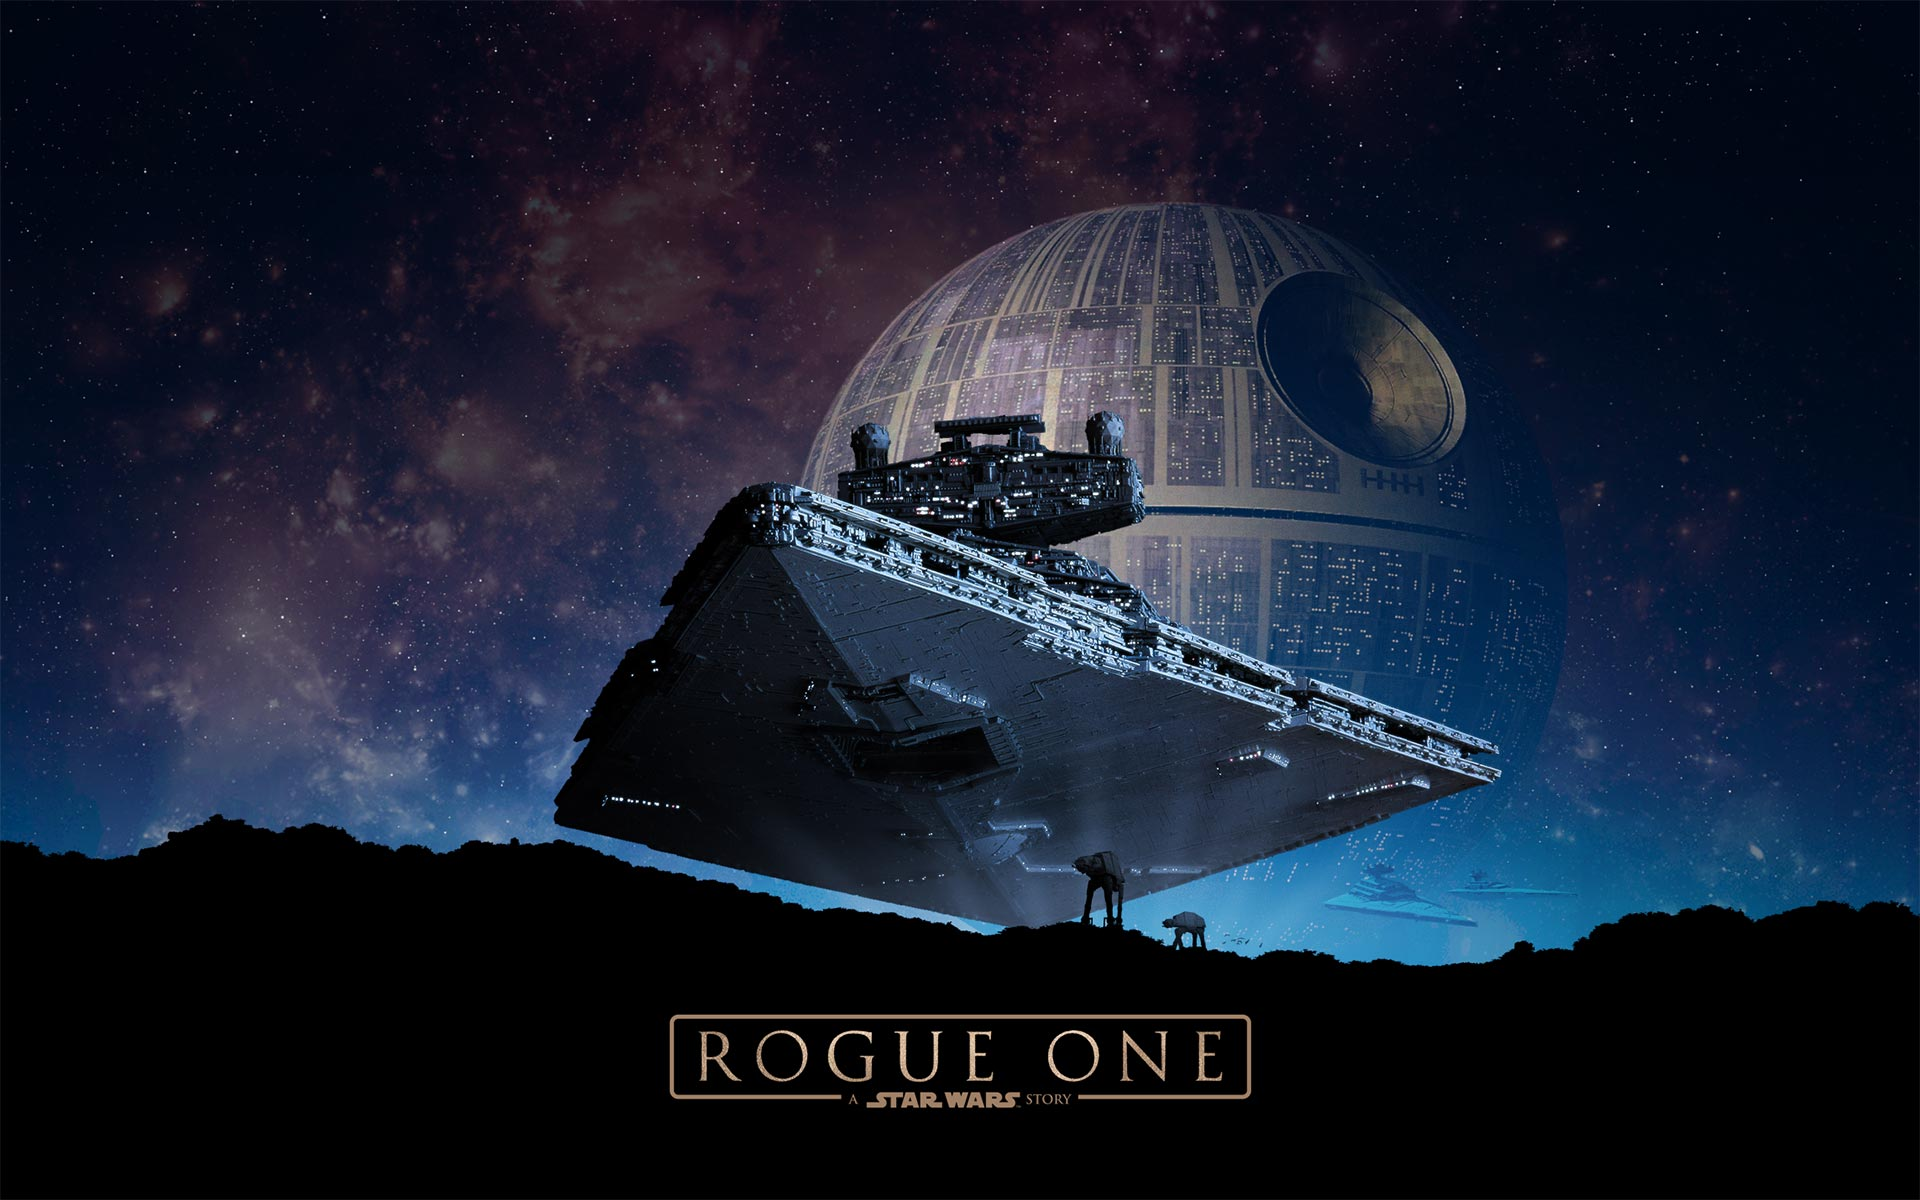 Fonds d'ecran de Star Wars Rogue One 28